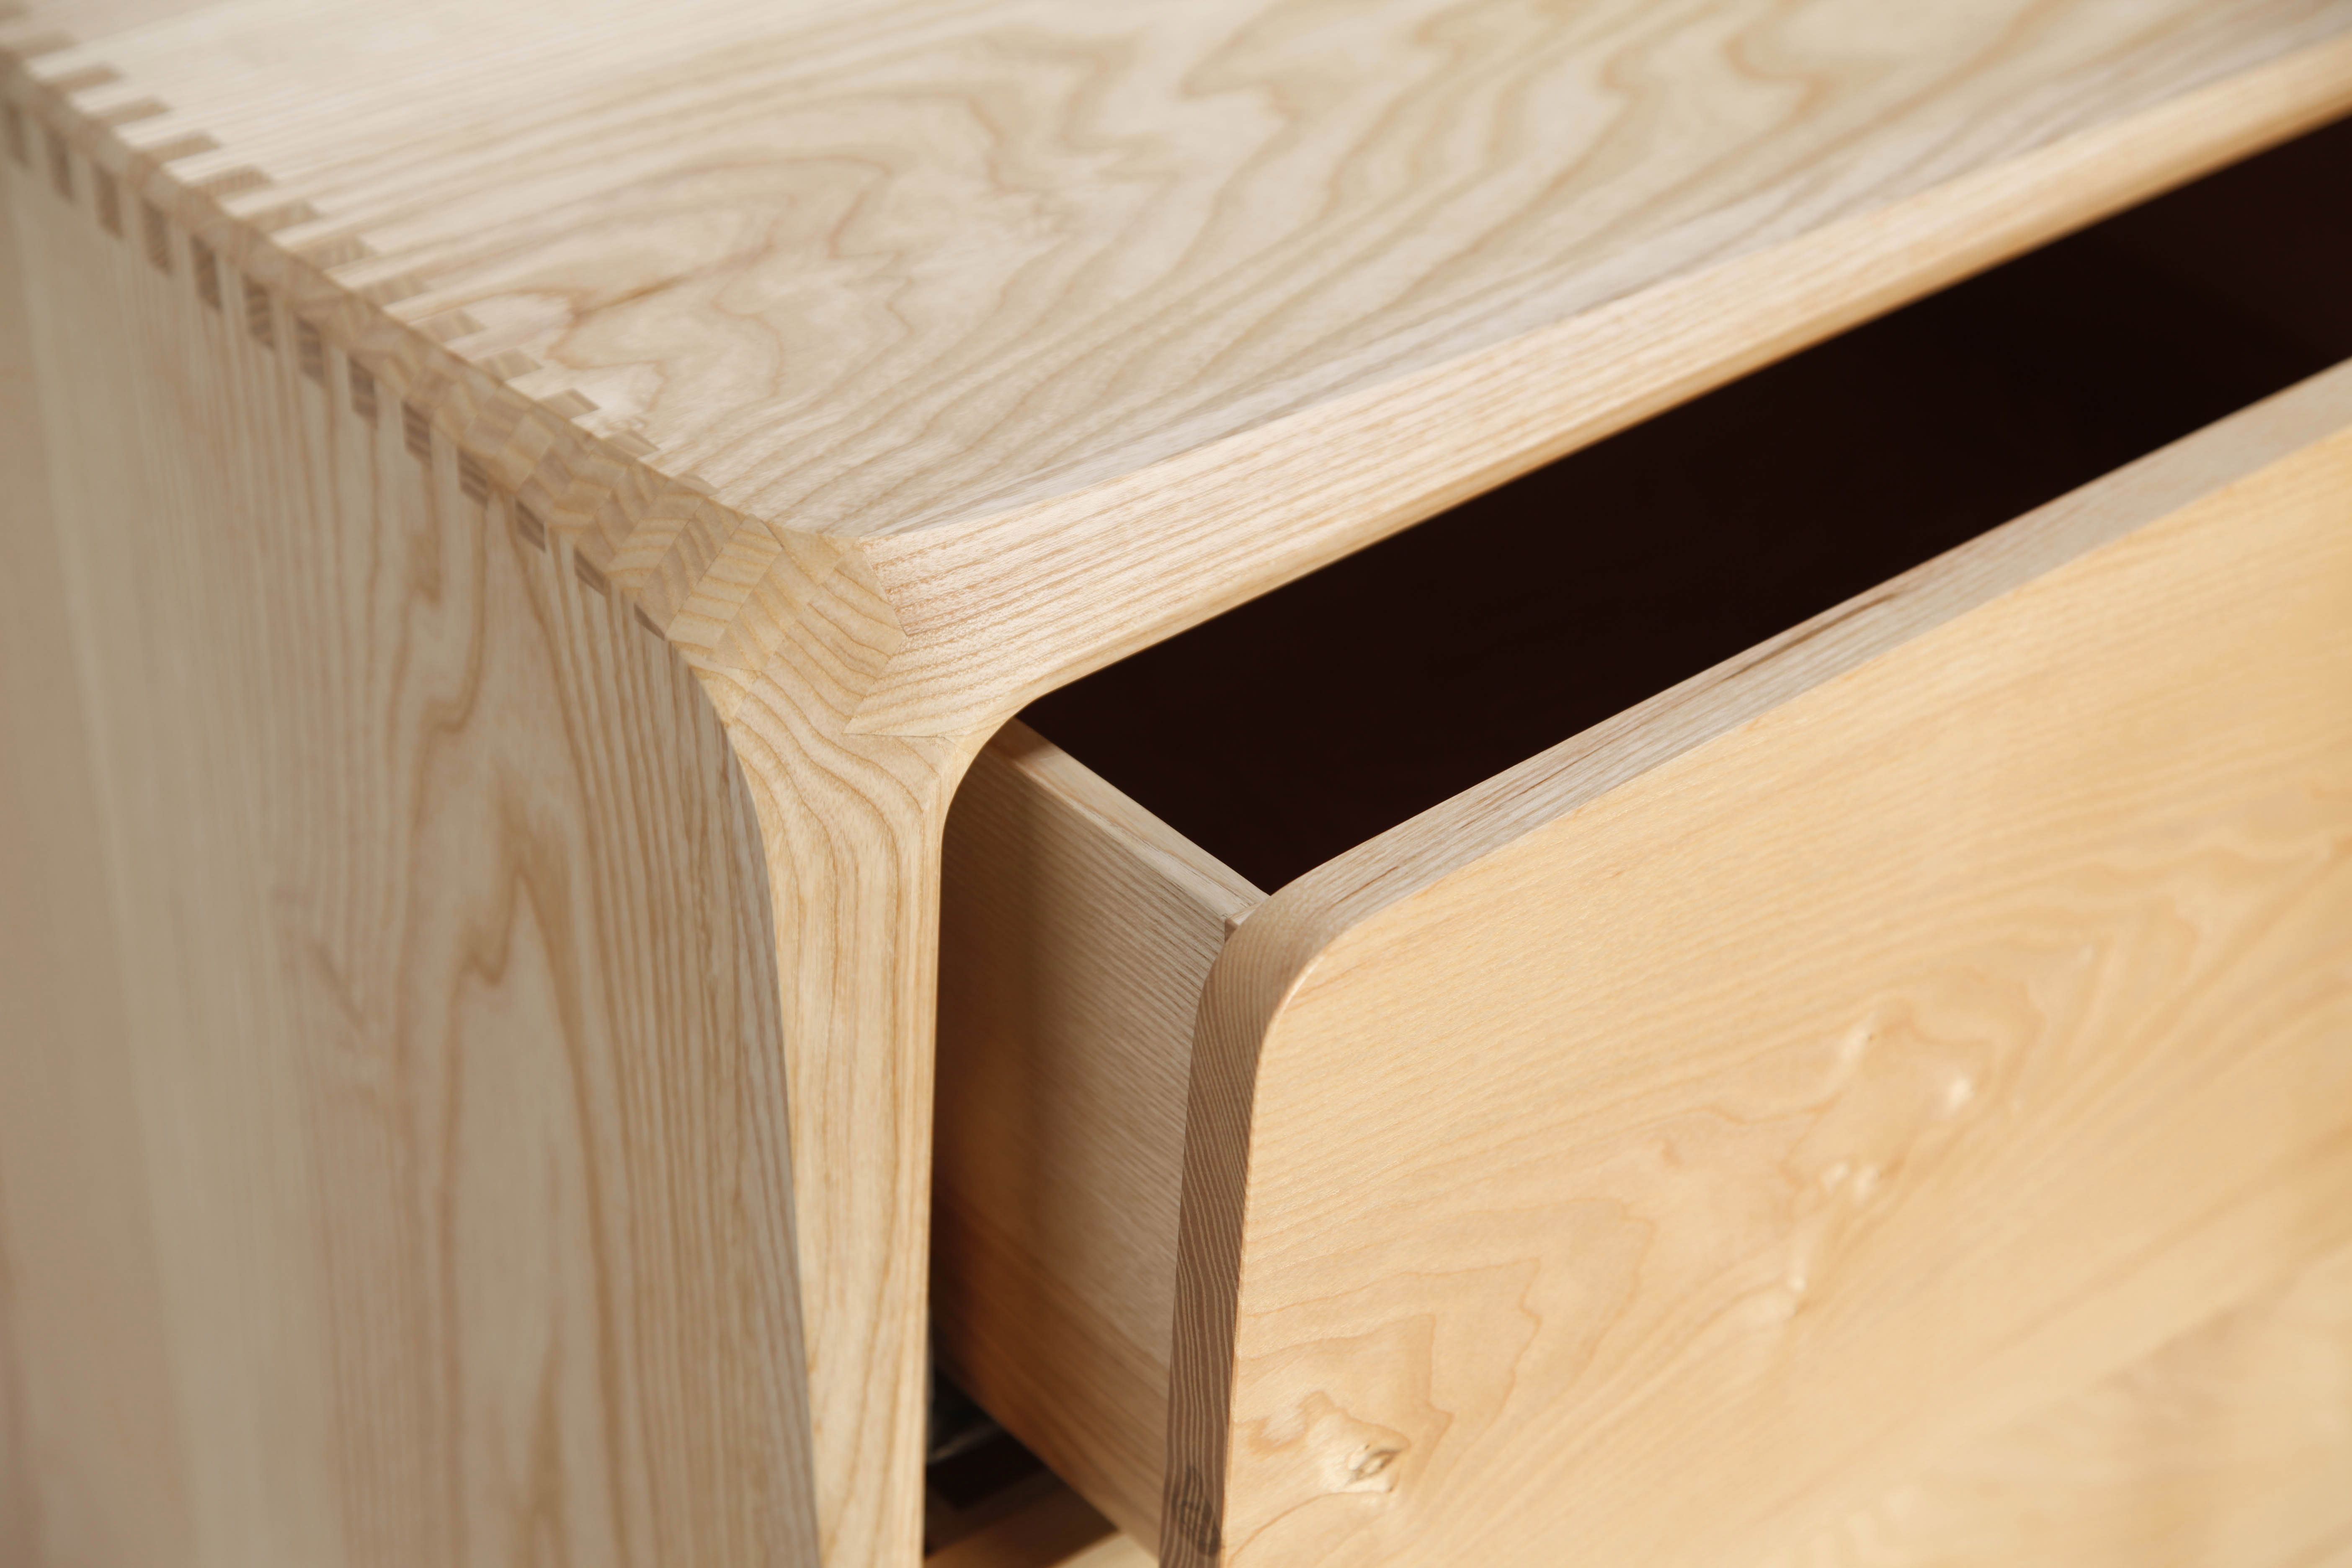 Hand shaped detail by our Cabinet Maker on this wooden chest of drawers